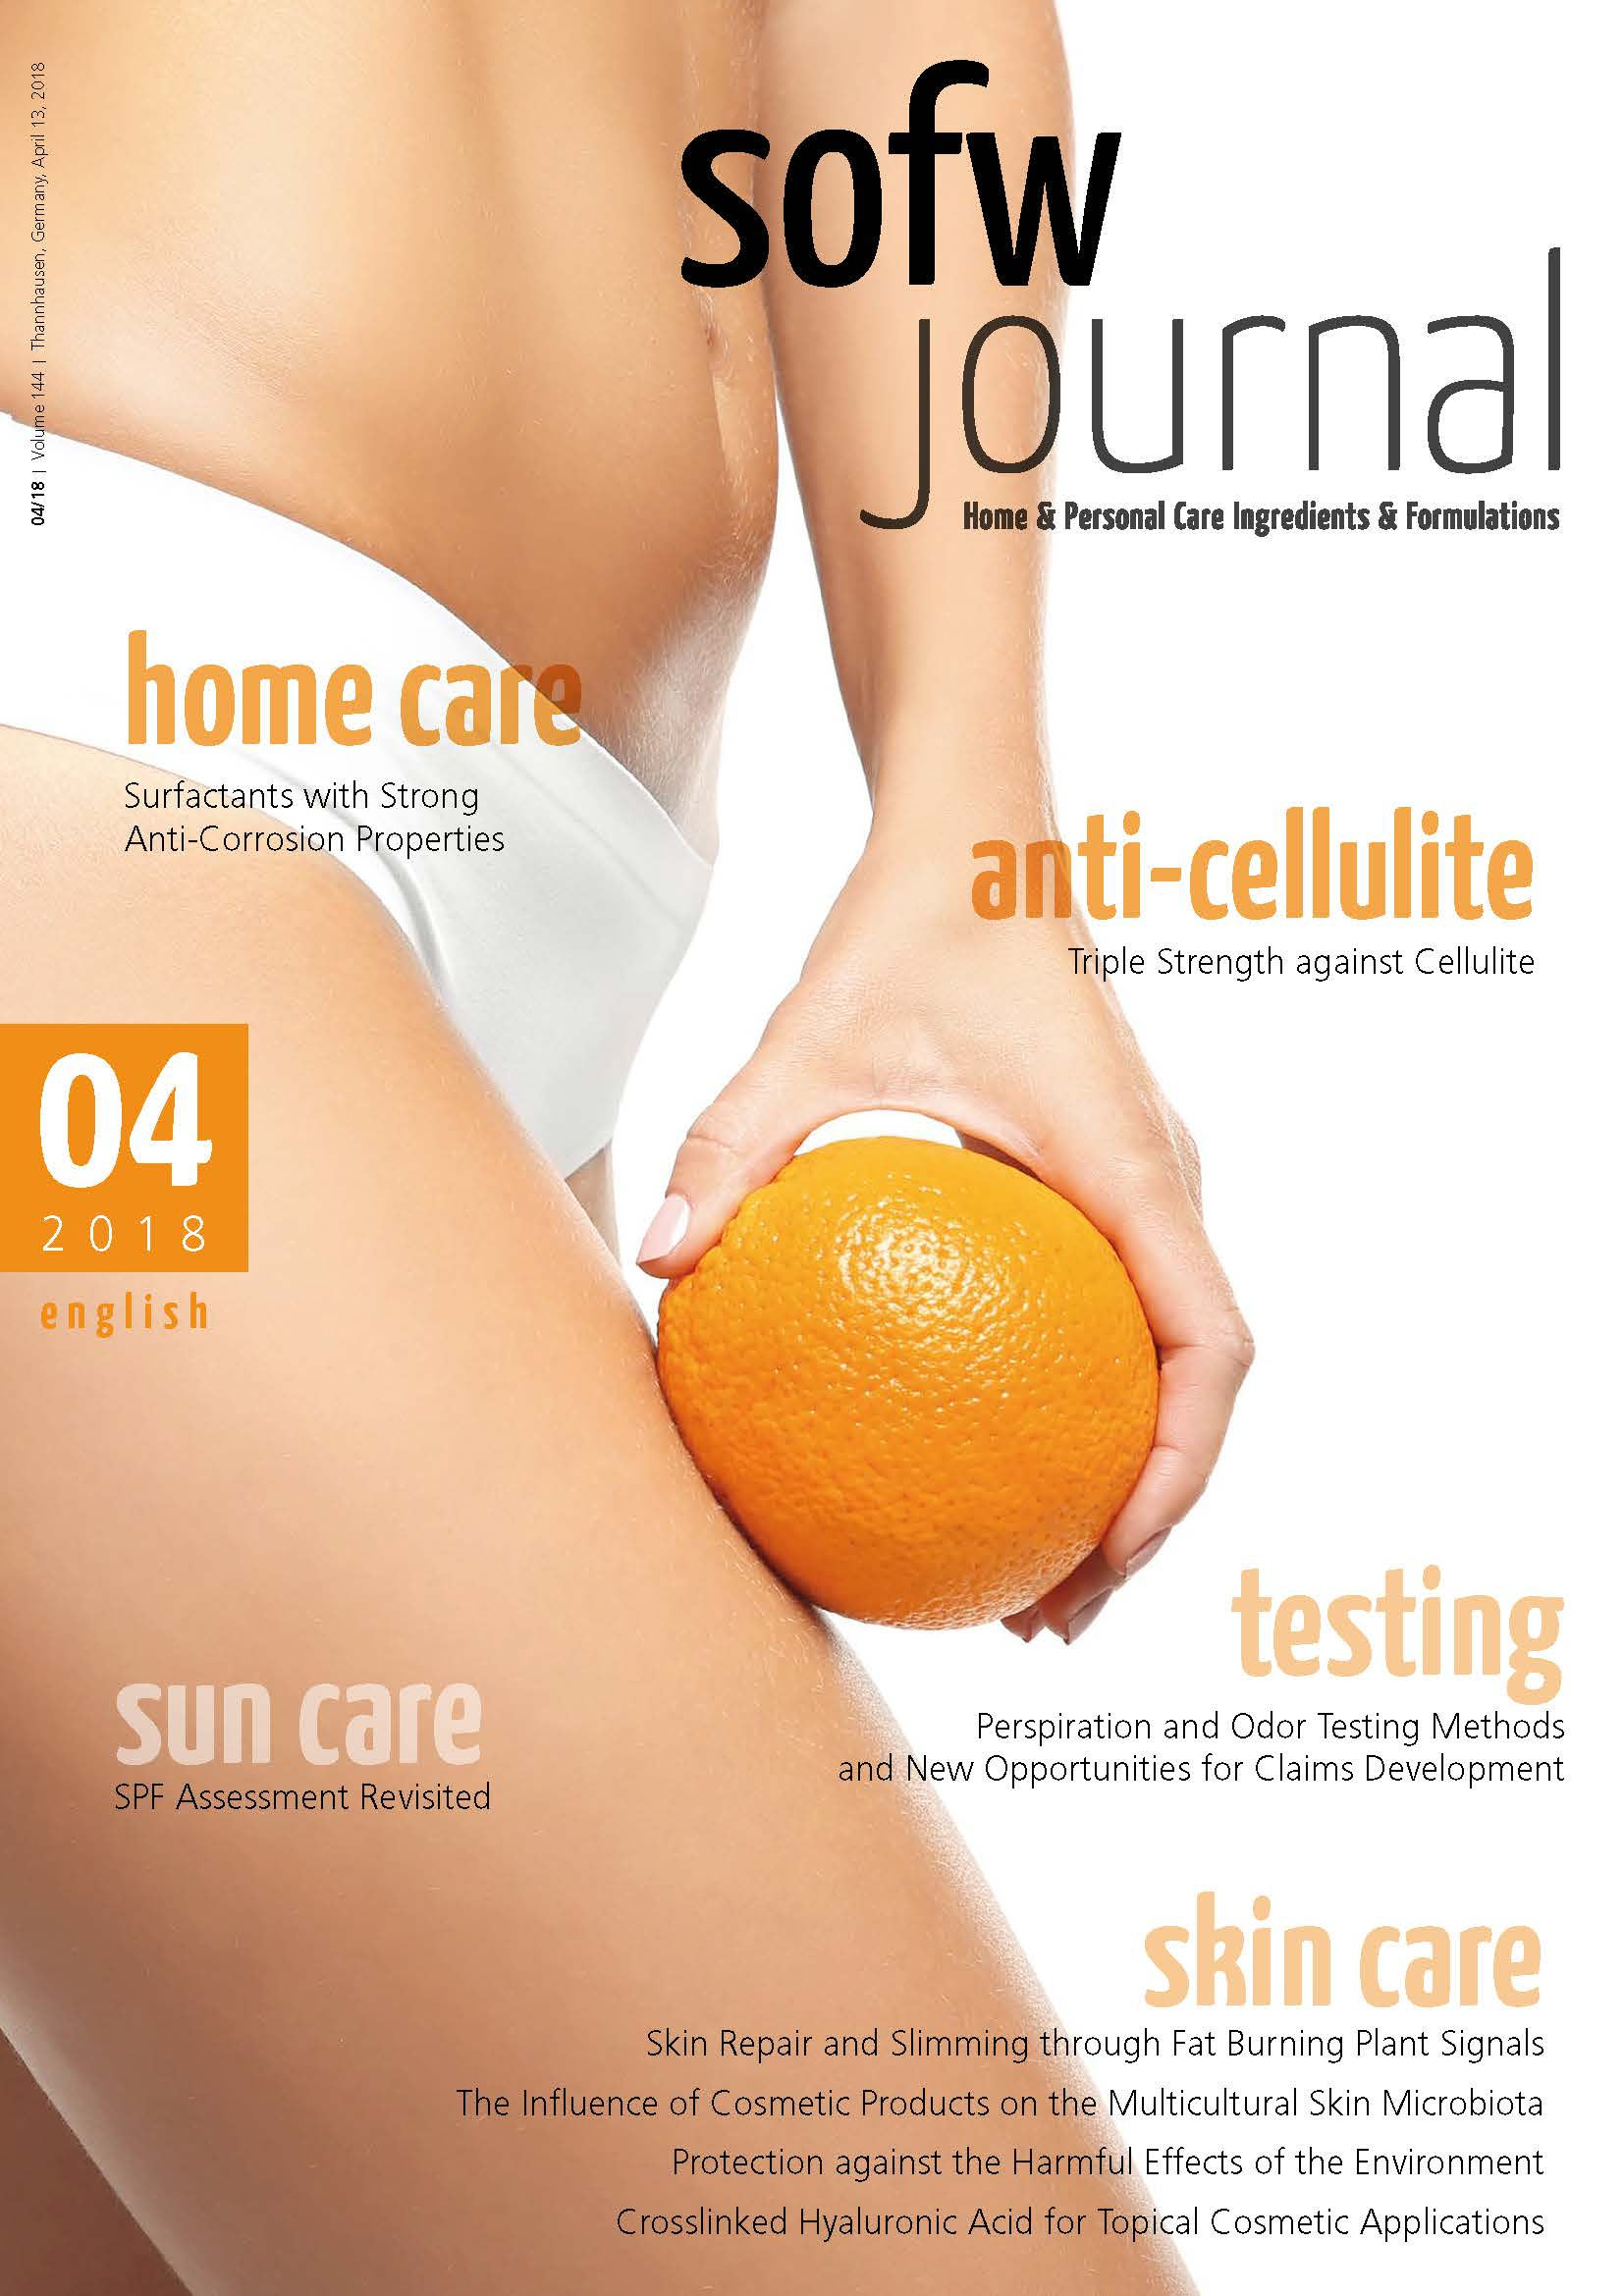 sofwjournal_en_2018_04_cover_1225582183